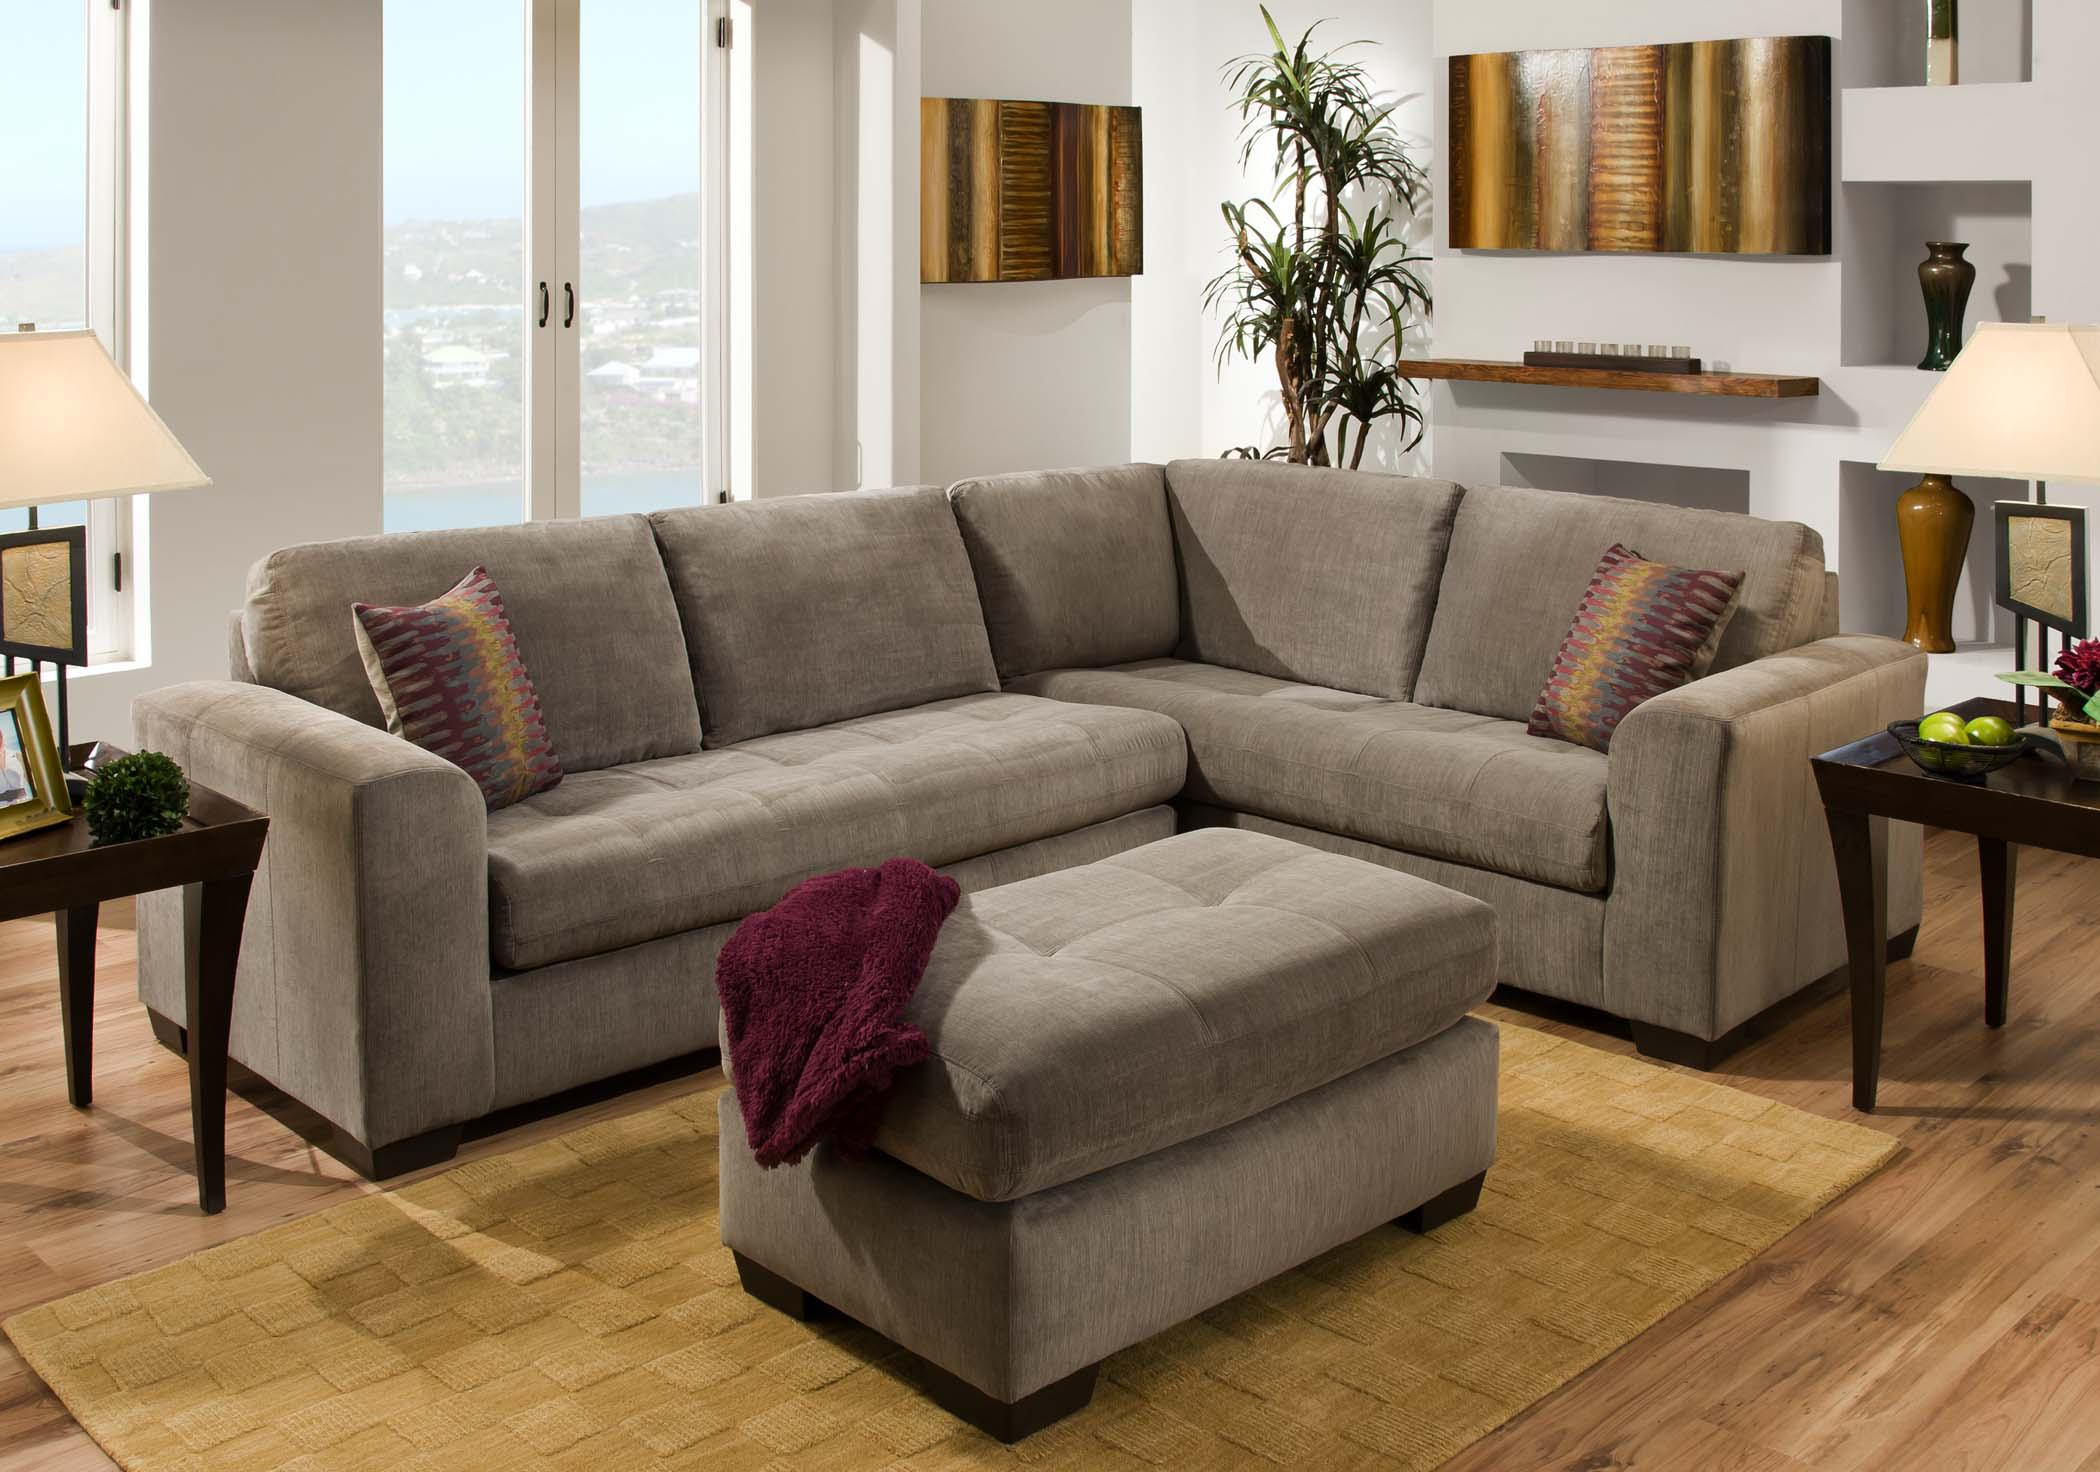 American Furniture 1230 Sectional Sofa - Item Number: 1231+1234-8900